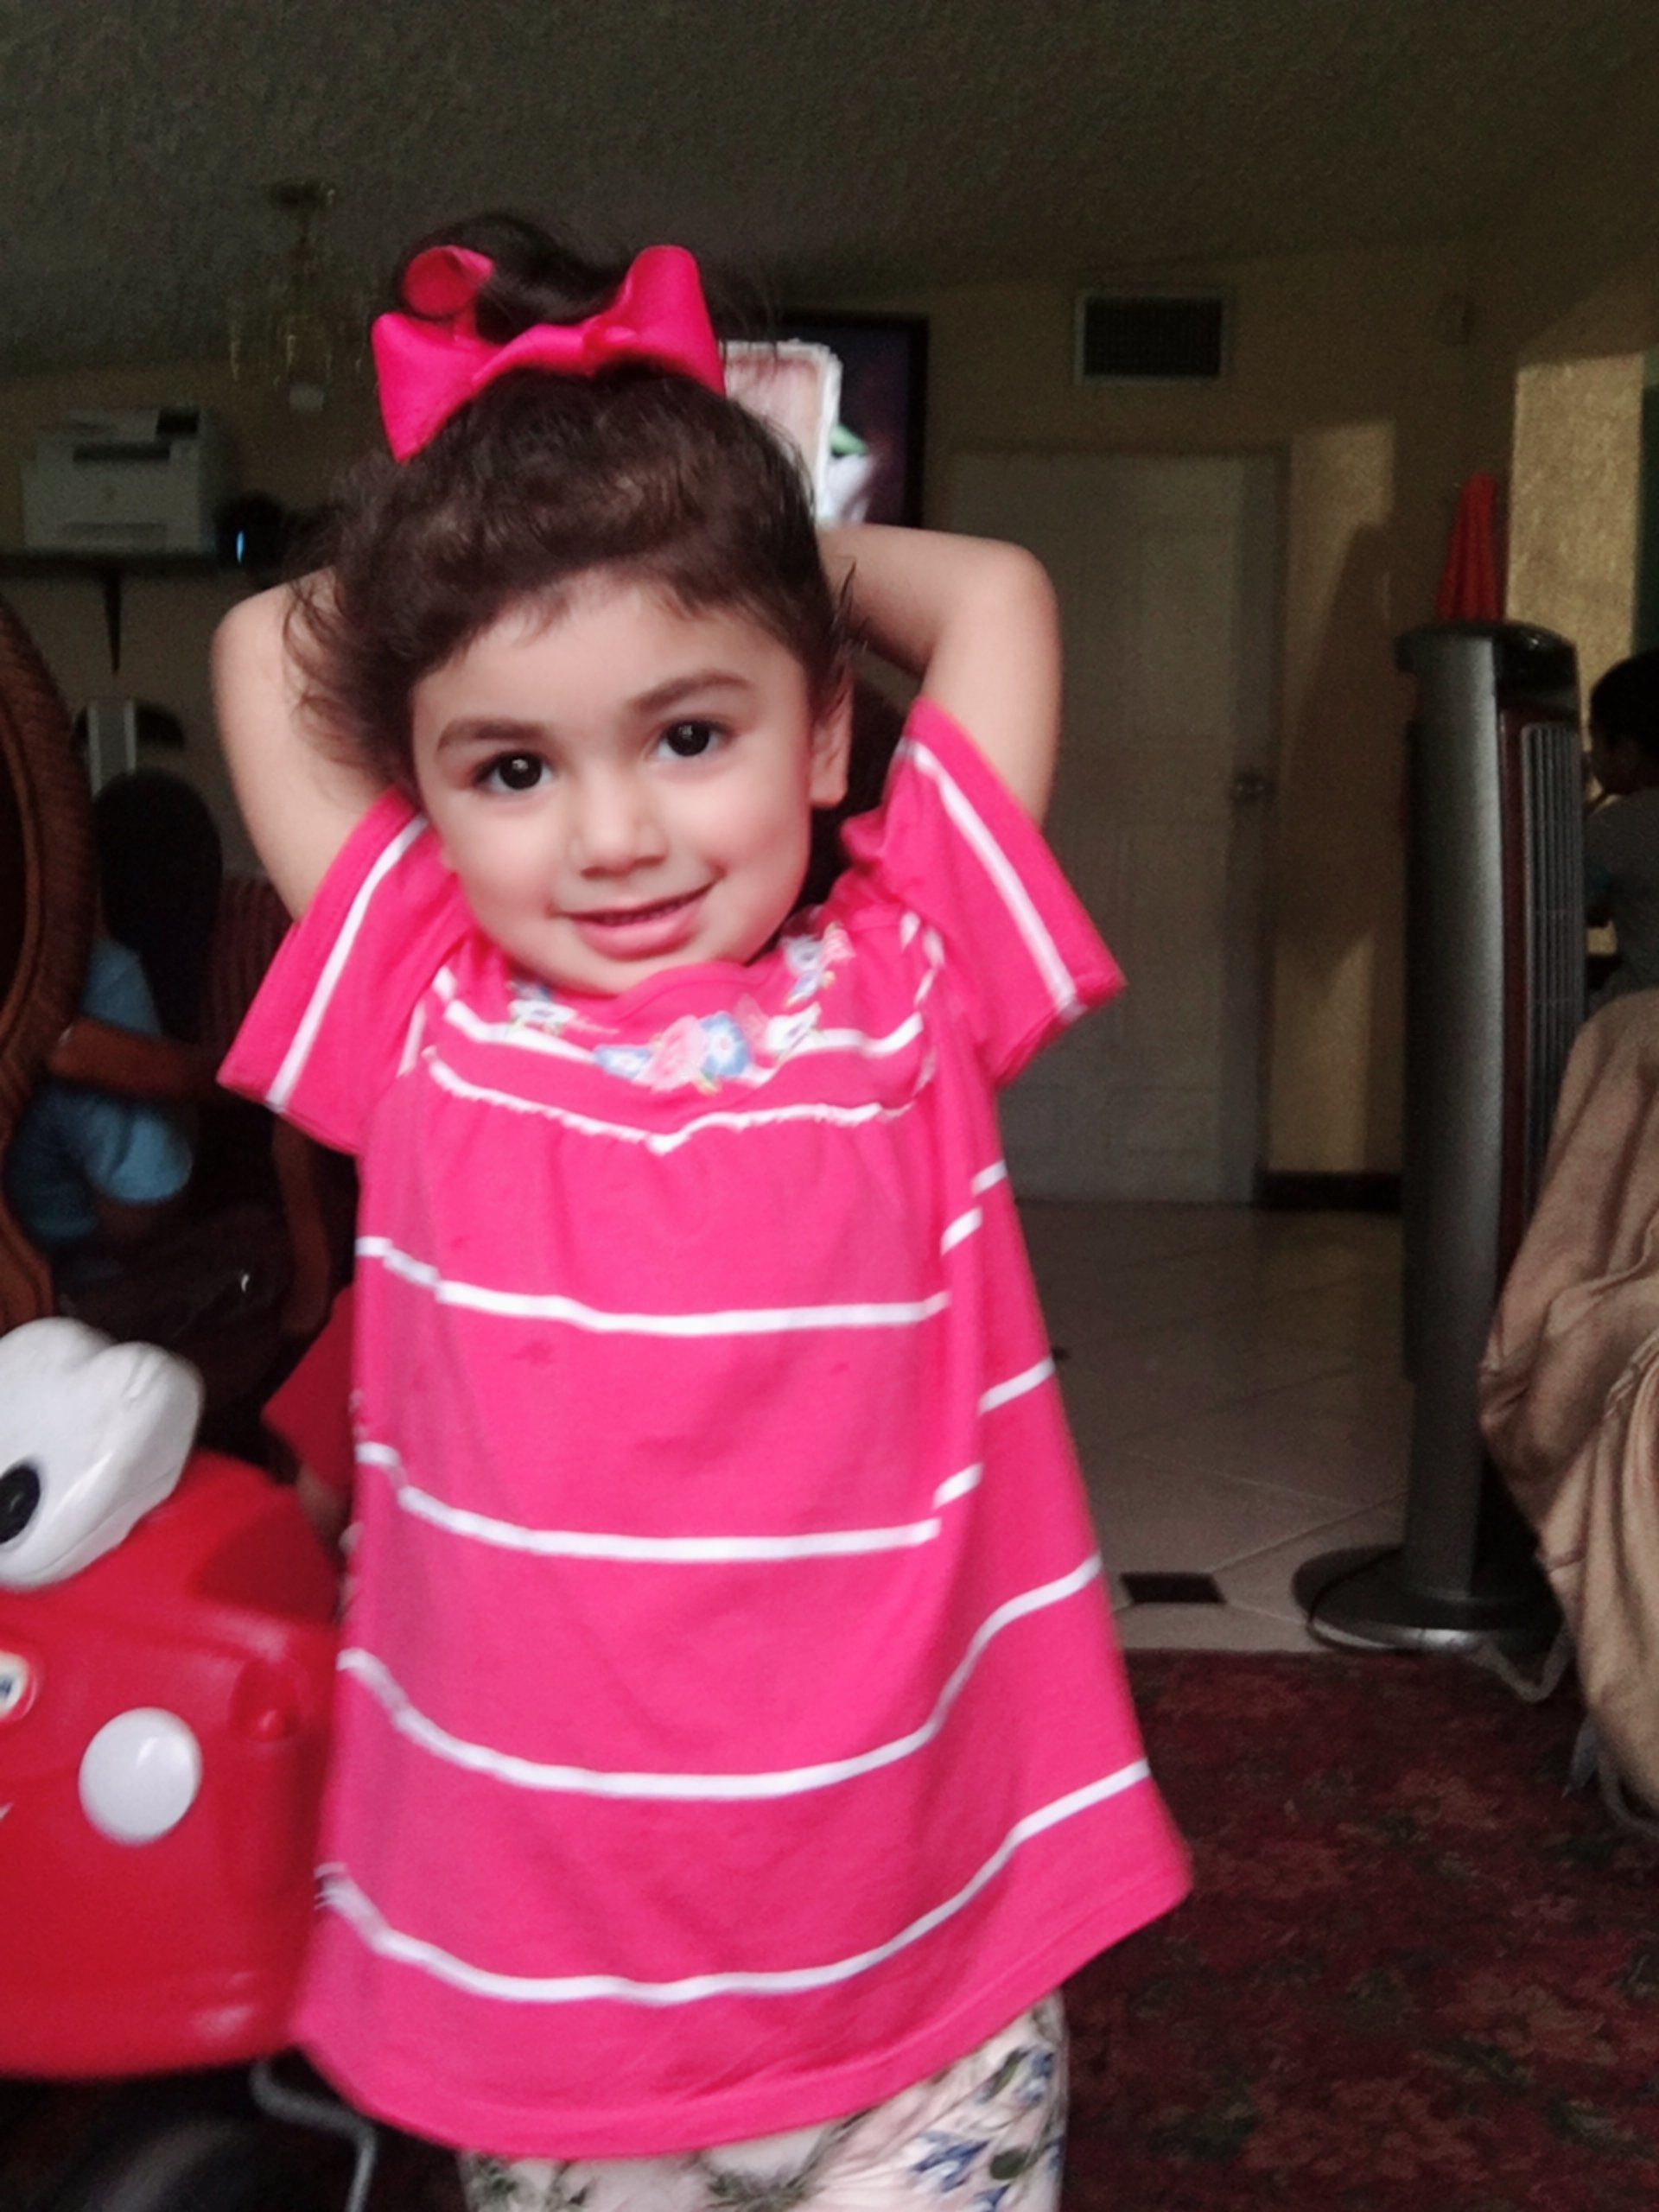 Zainab Mughal is a two-year-old from South Florida who is battling